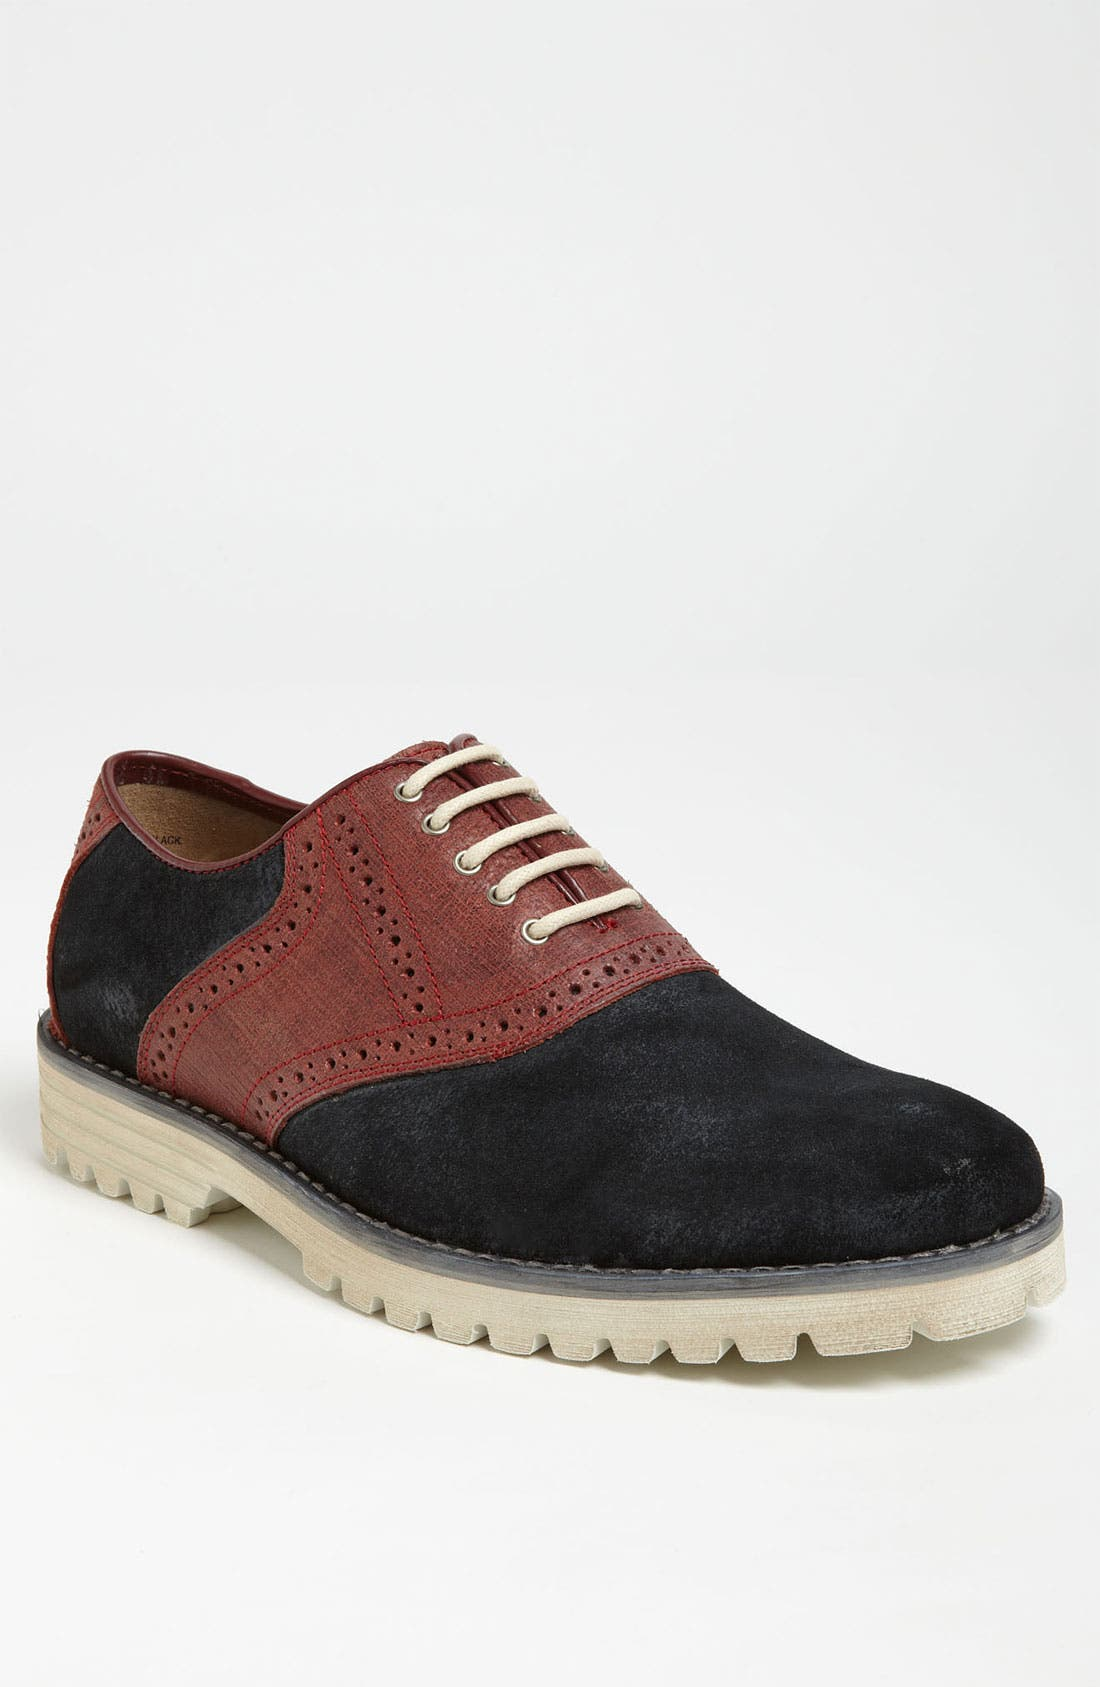 Alternate Image 1 Selected - Hush Puppies® 'Authentic' Saddle Shoe